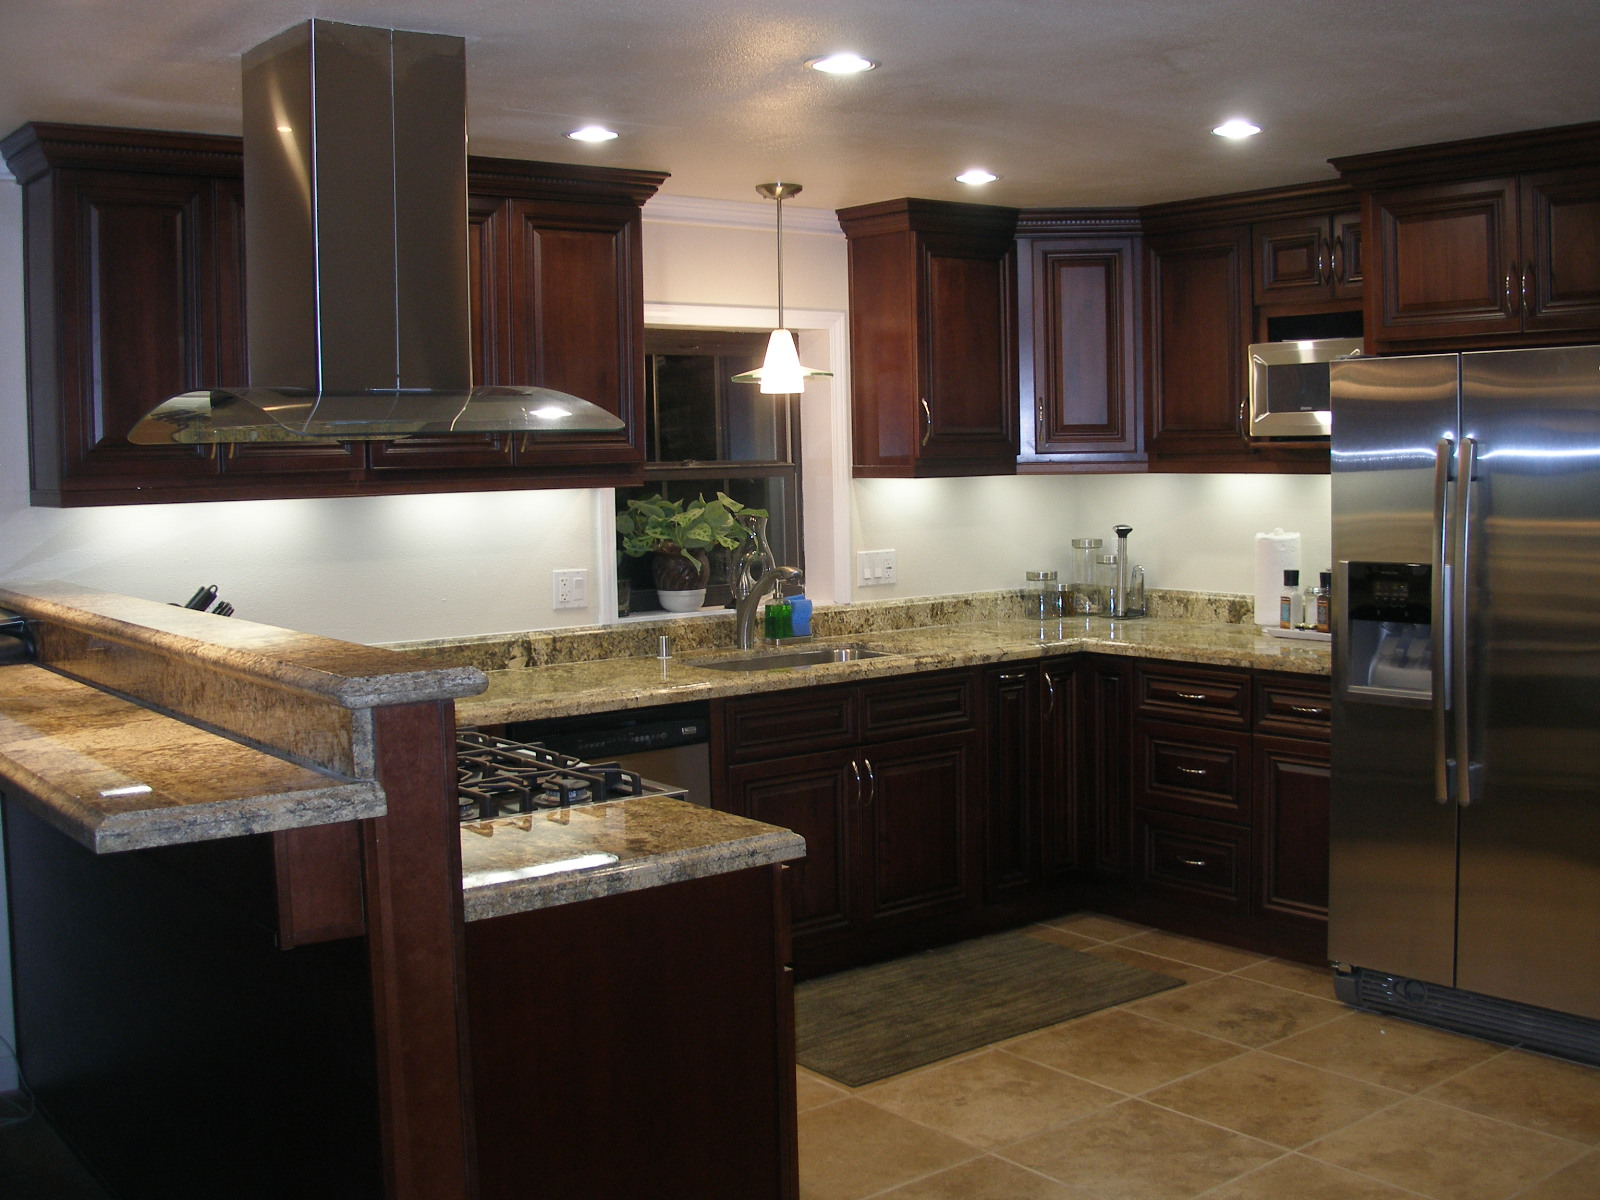 Kitchen remodeling brad t jones construction for Kitchen remodel ideas pictures